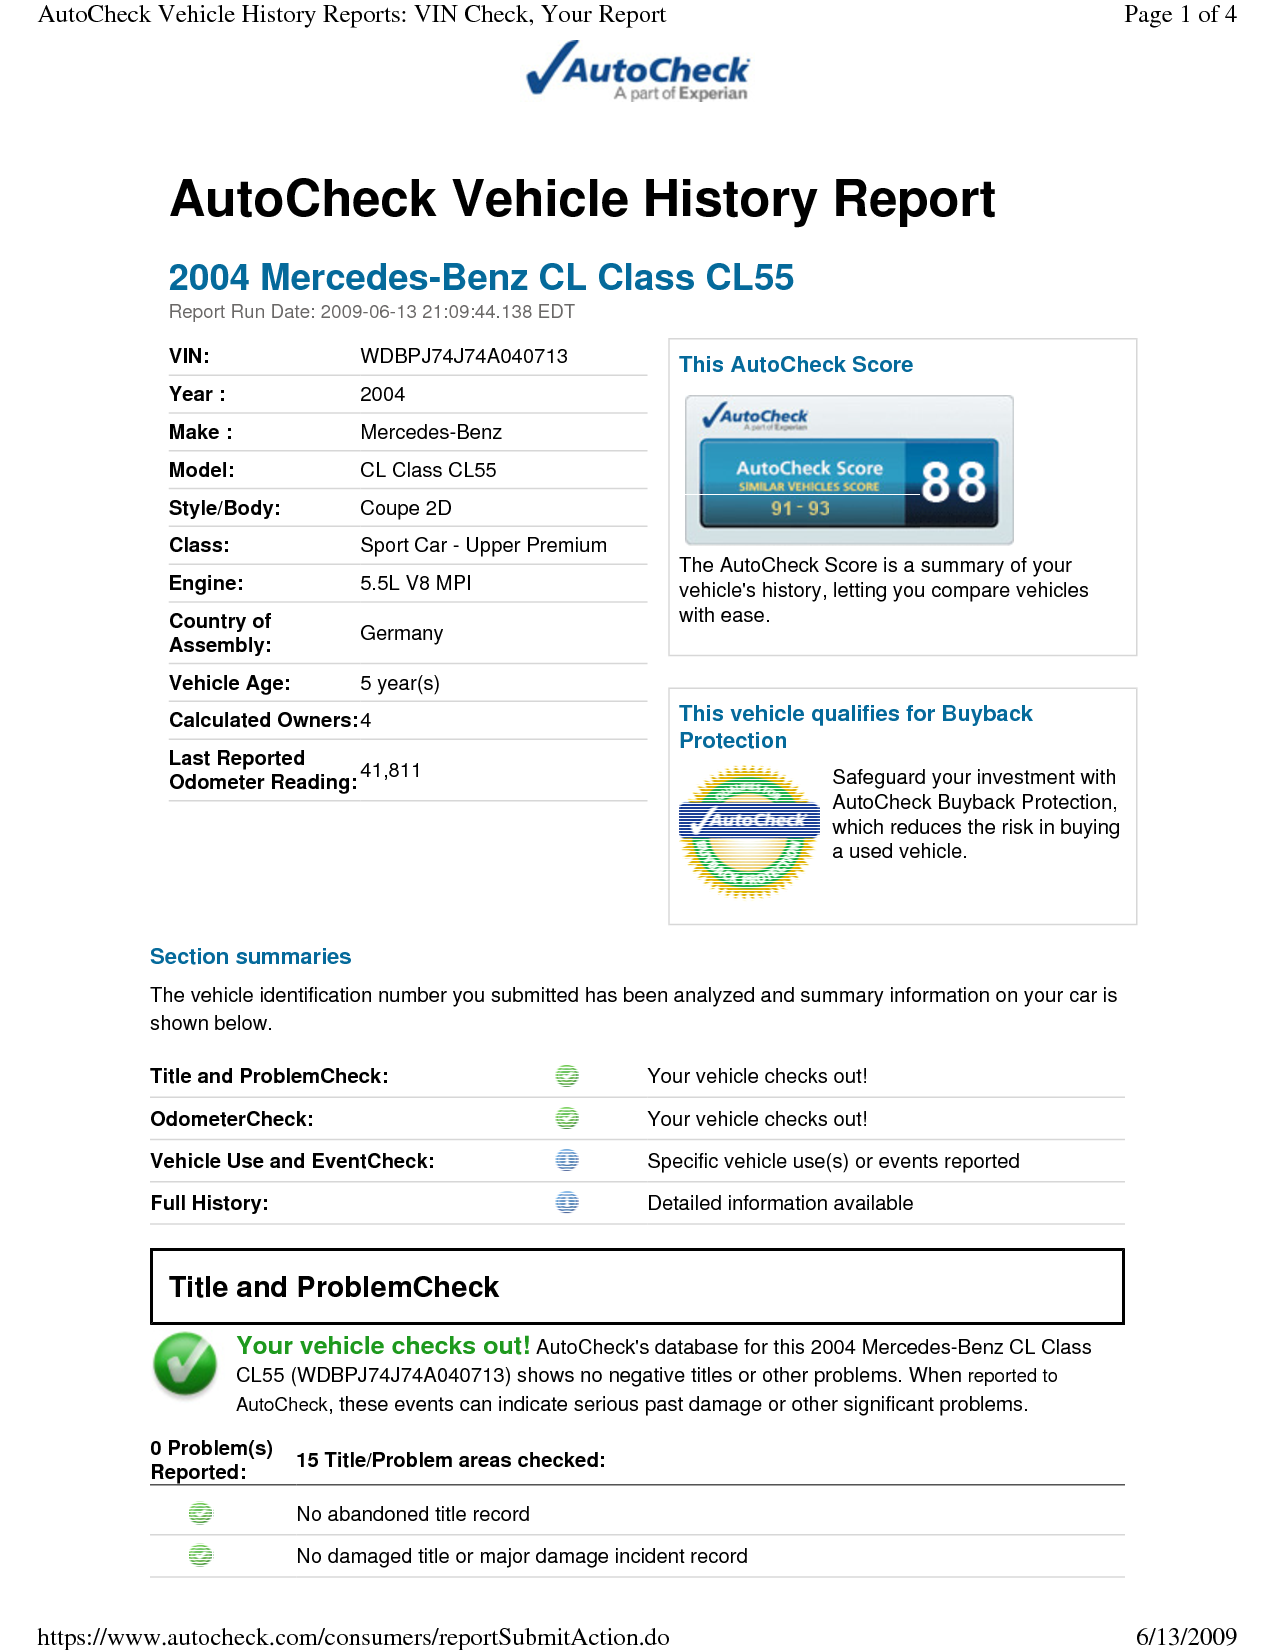 Where Can I Get A Free Carfax Report Luxury Carfax Vs Autocheck Reports What You Don T Know